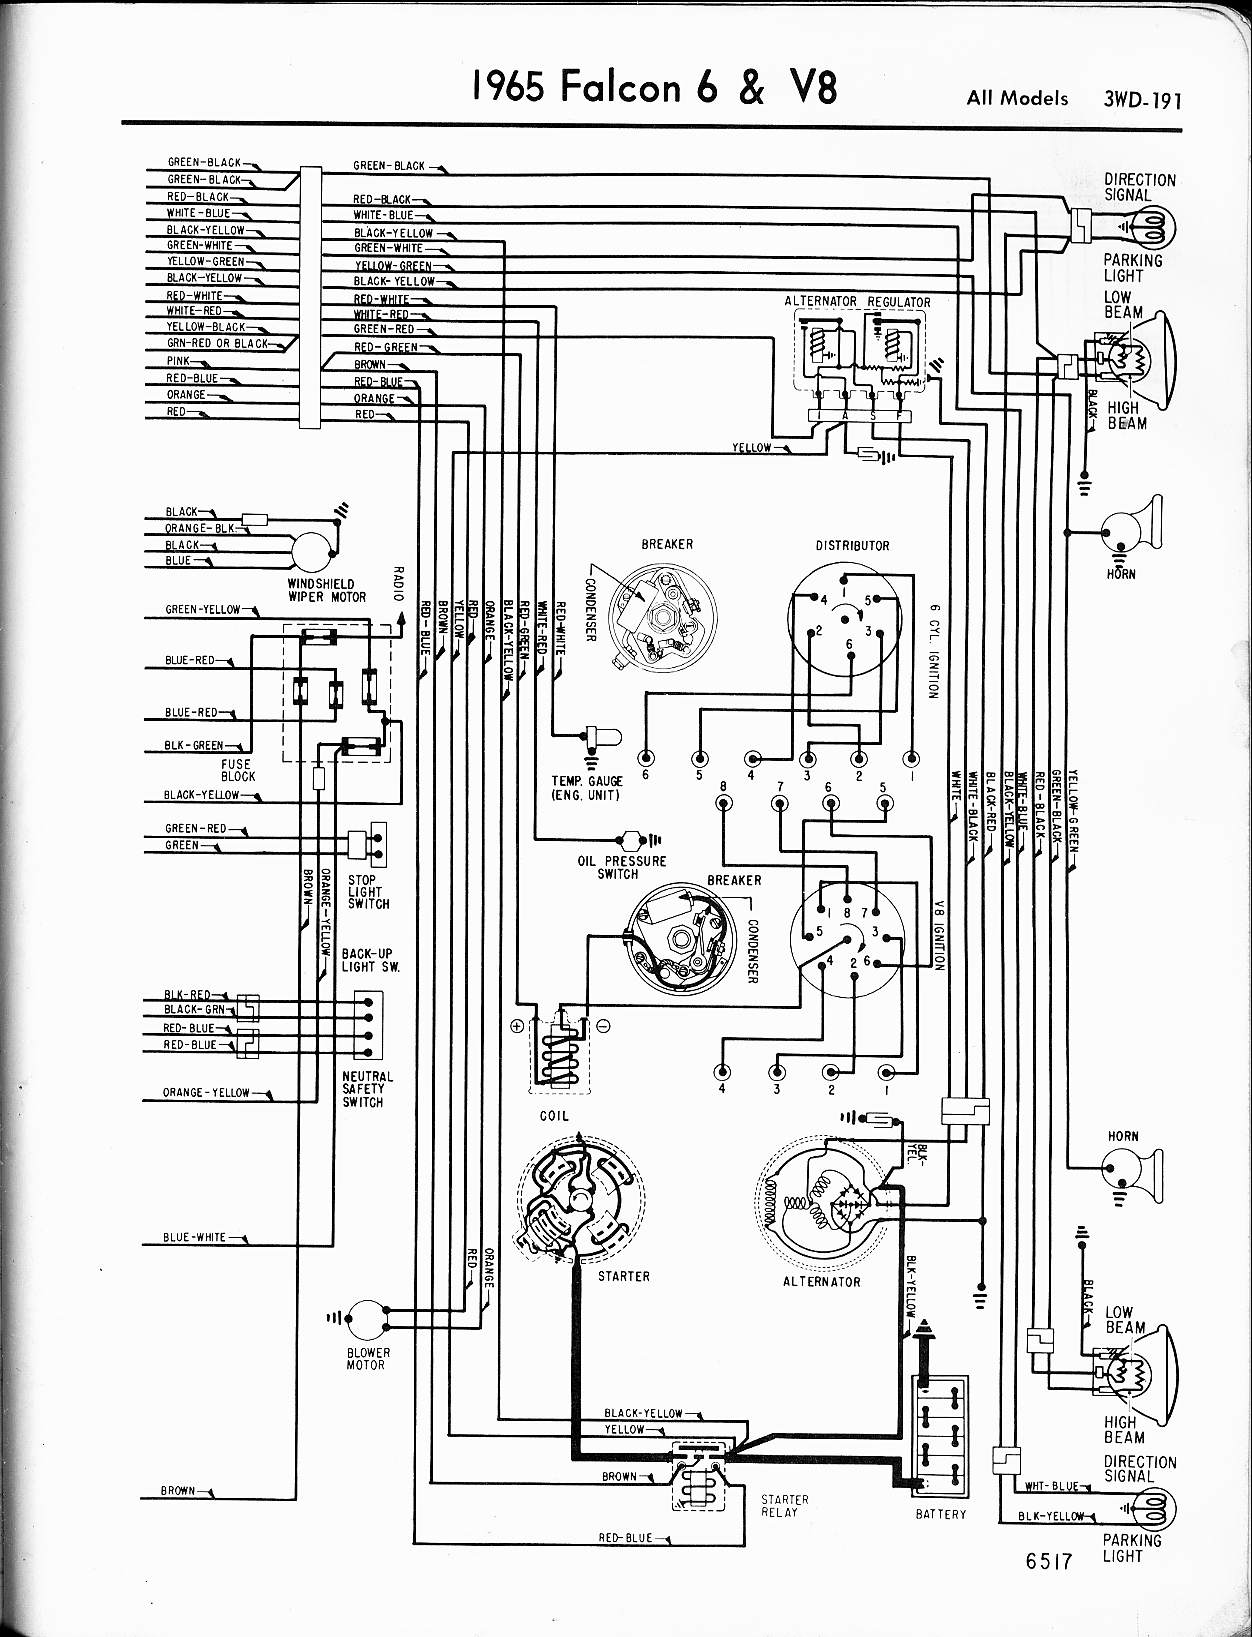 MWire5765 191 engine wire diagram for 65 falcon 65 falcon hot rod \u2022 wiring 1965 ford alternator wiring diagram at soozxer.org